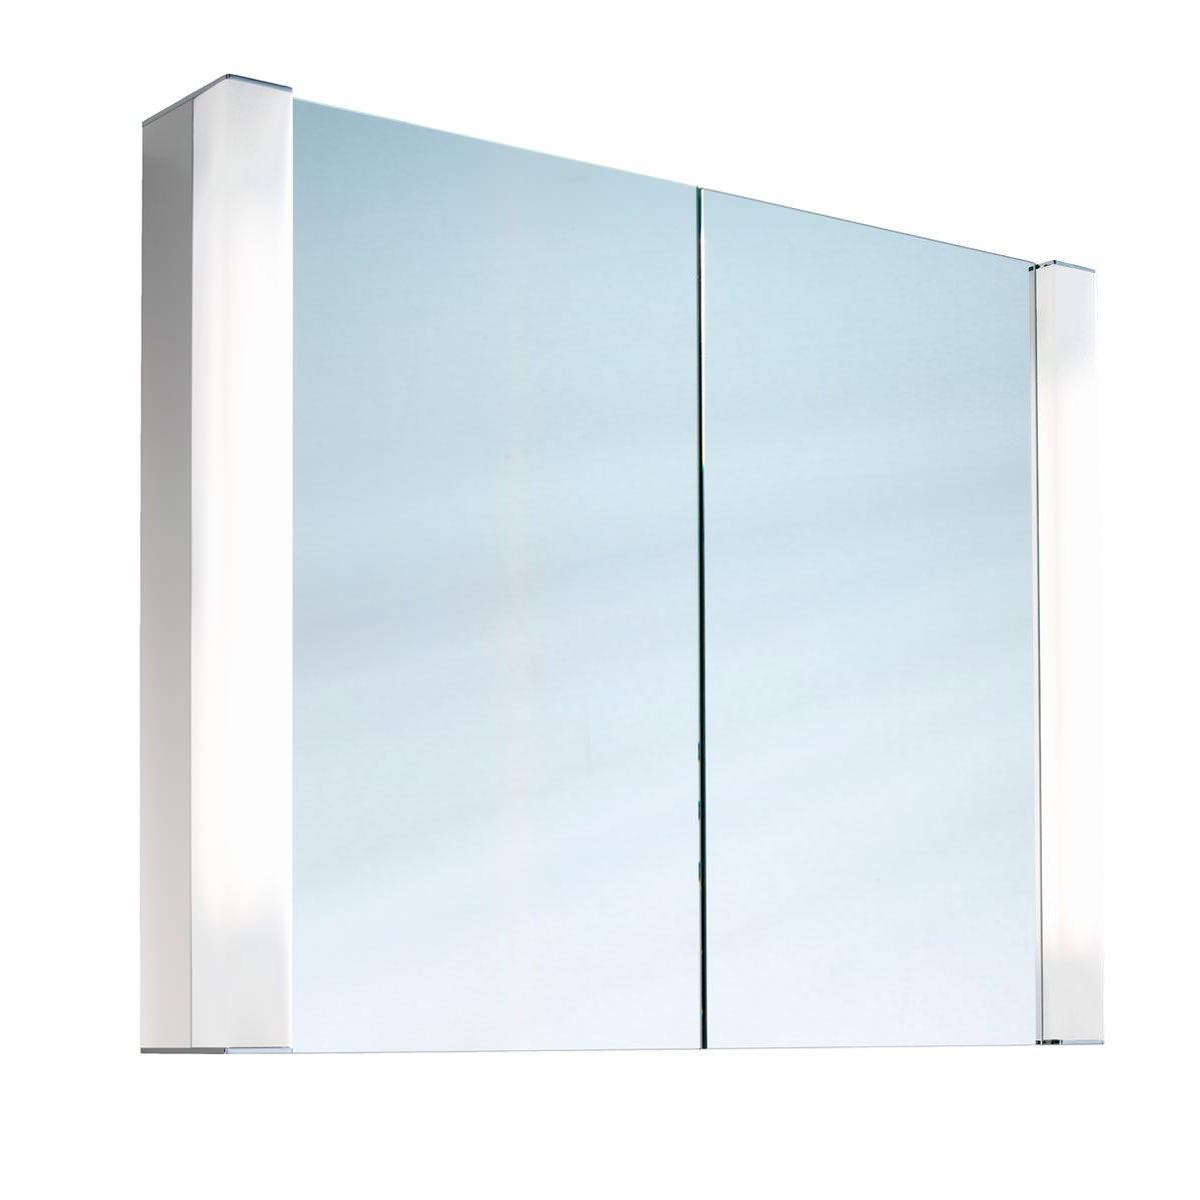 Schneider pepline 2 door mirror cabinet 800mm for Bathroom cabinets 800mm high